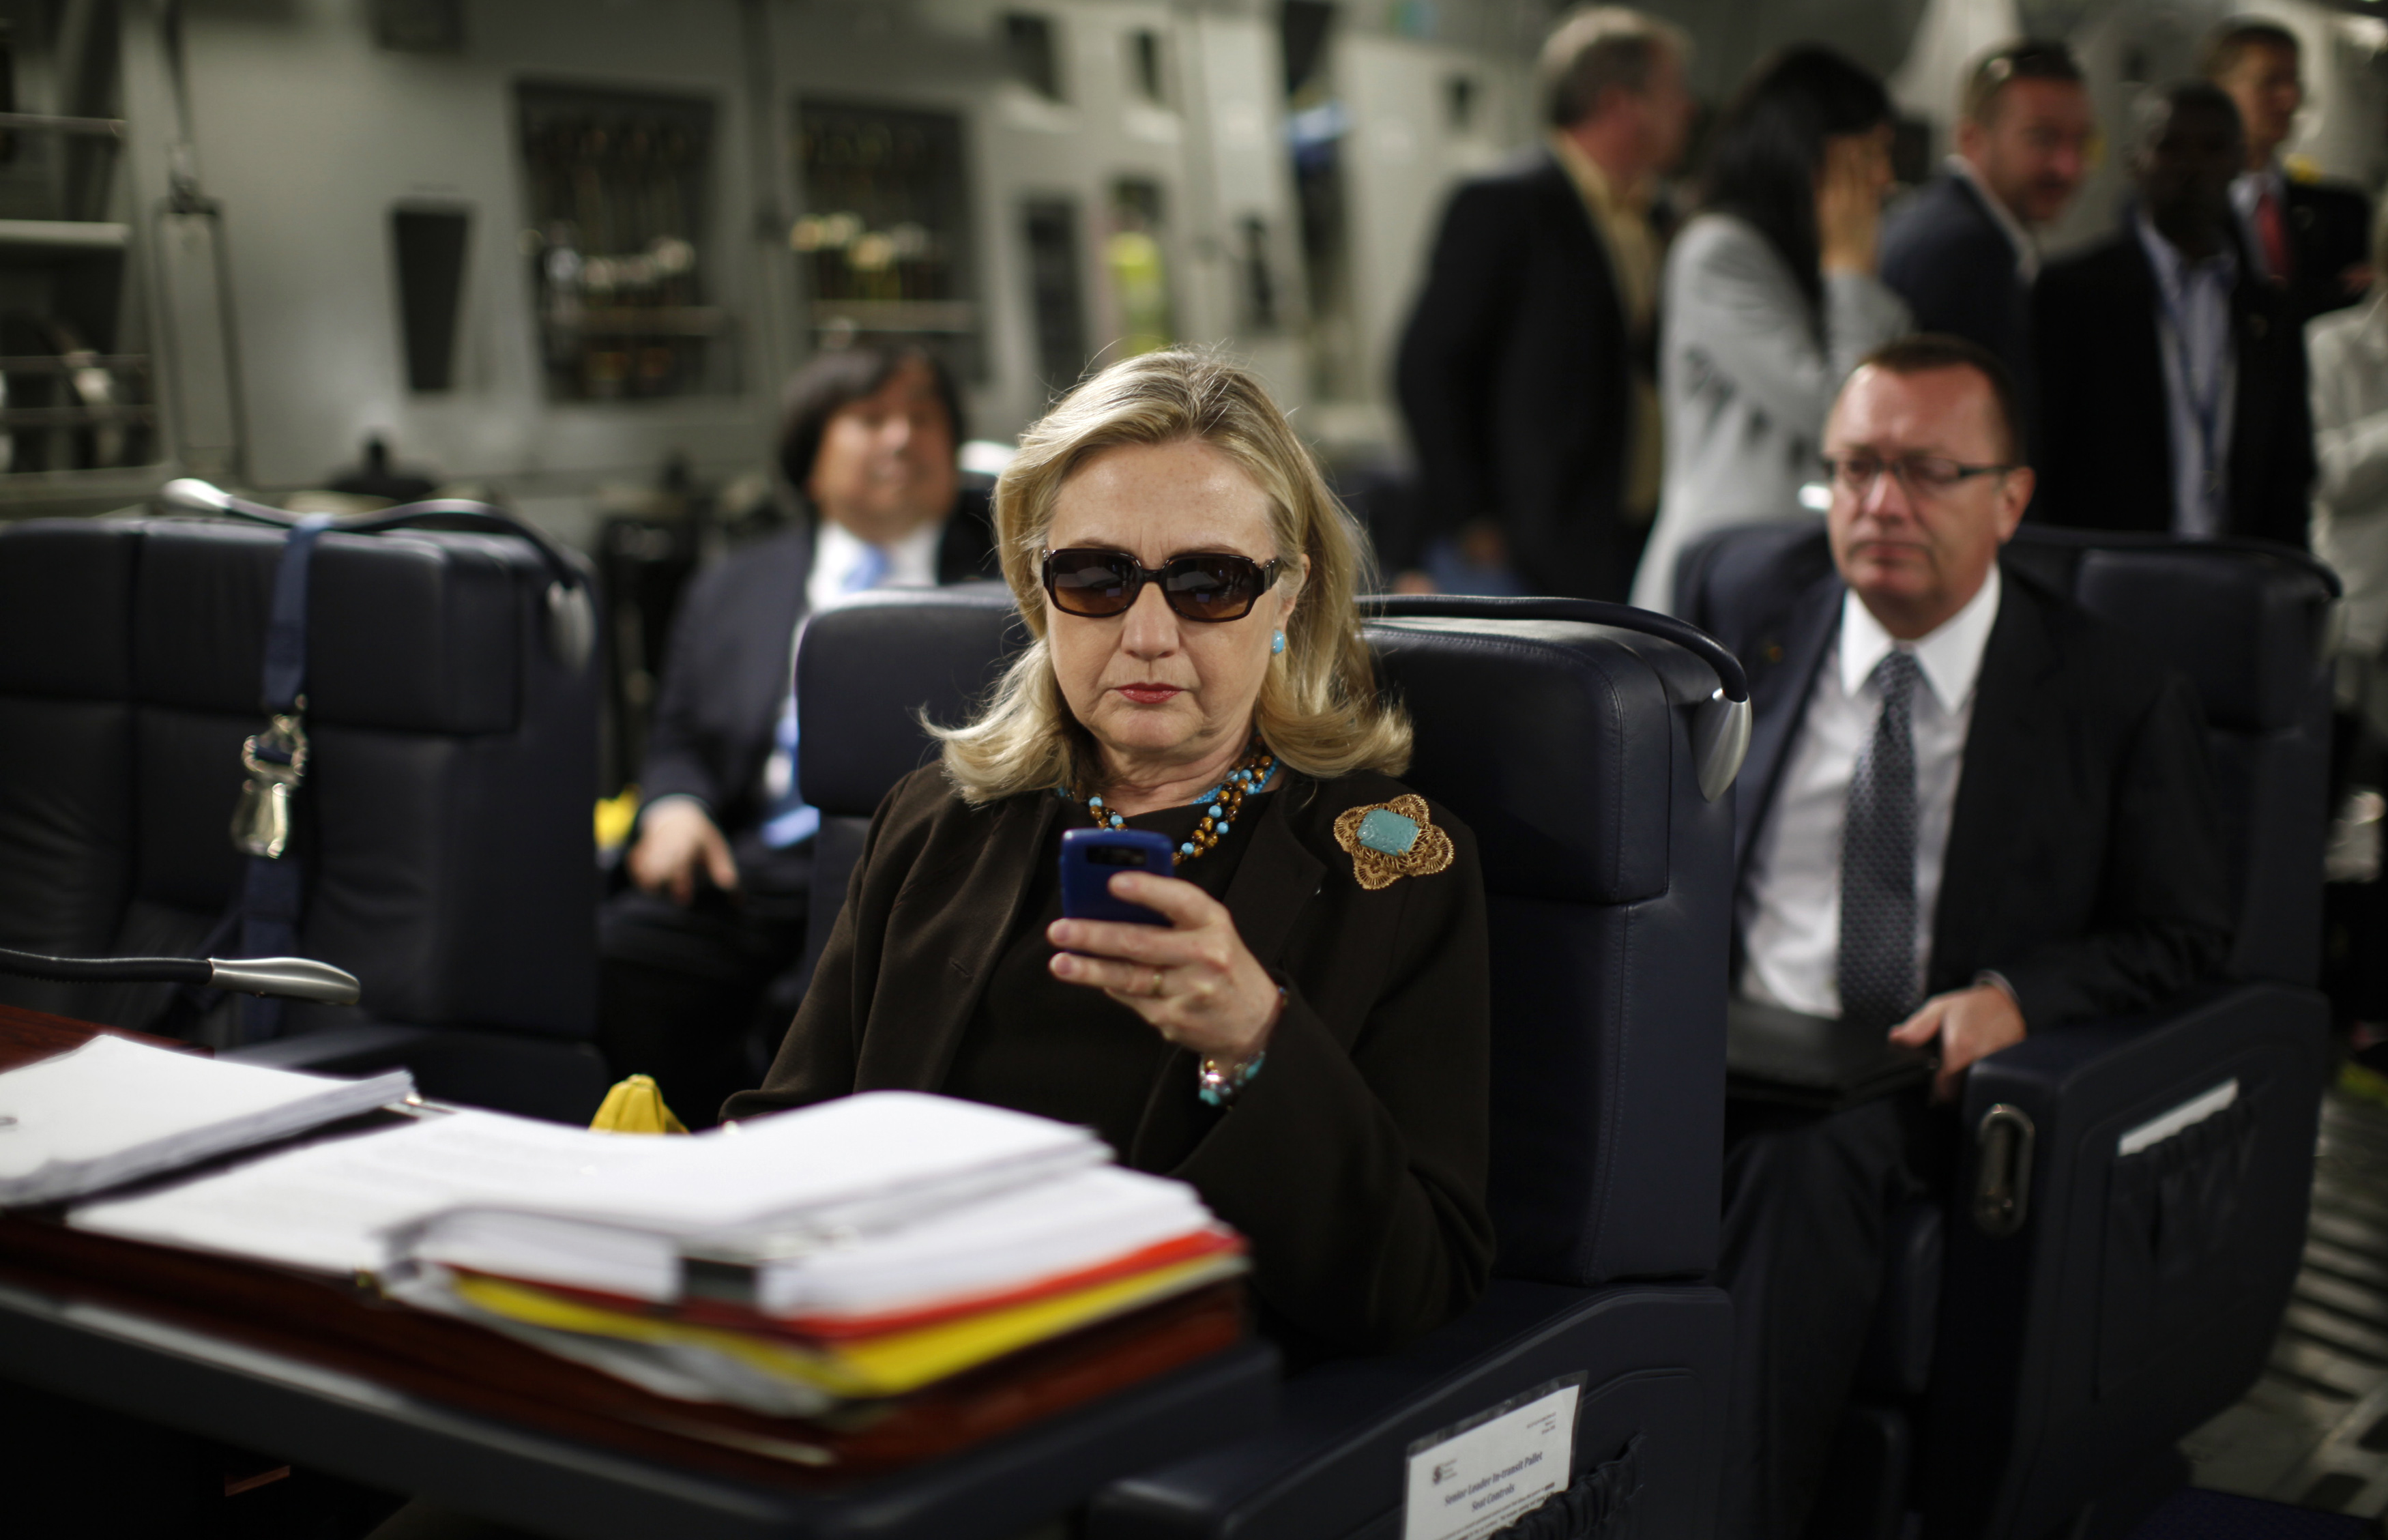 What You May Have Forgotten About The Hillary Clinton Email Controversy